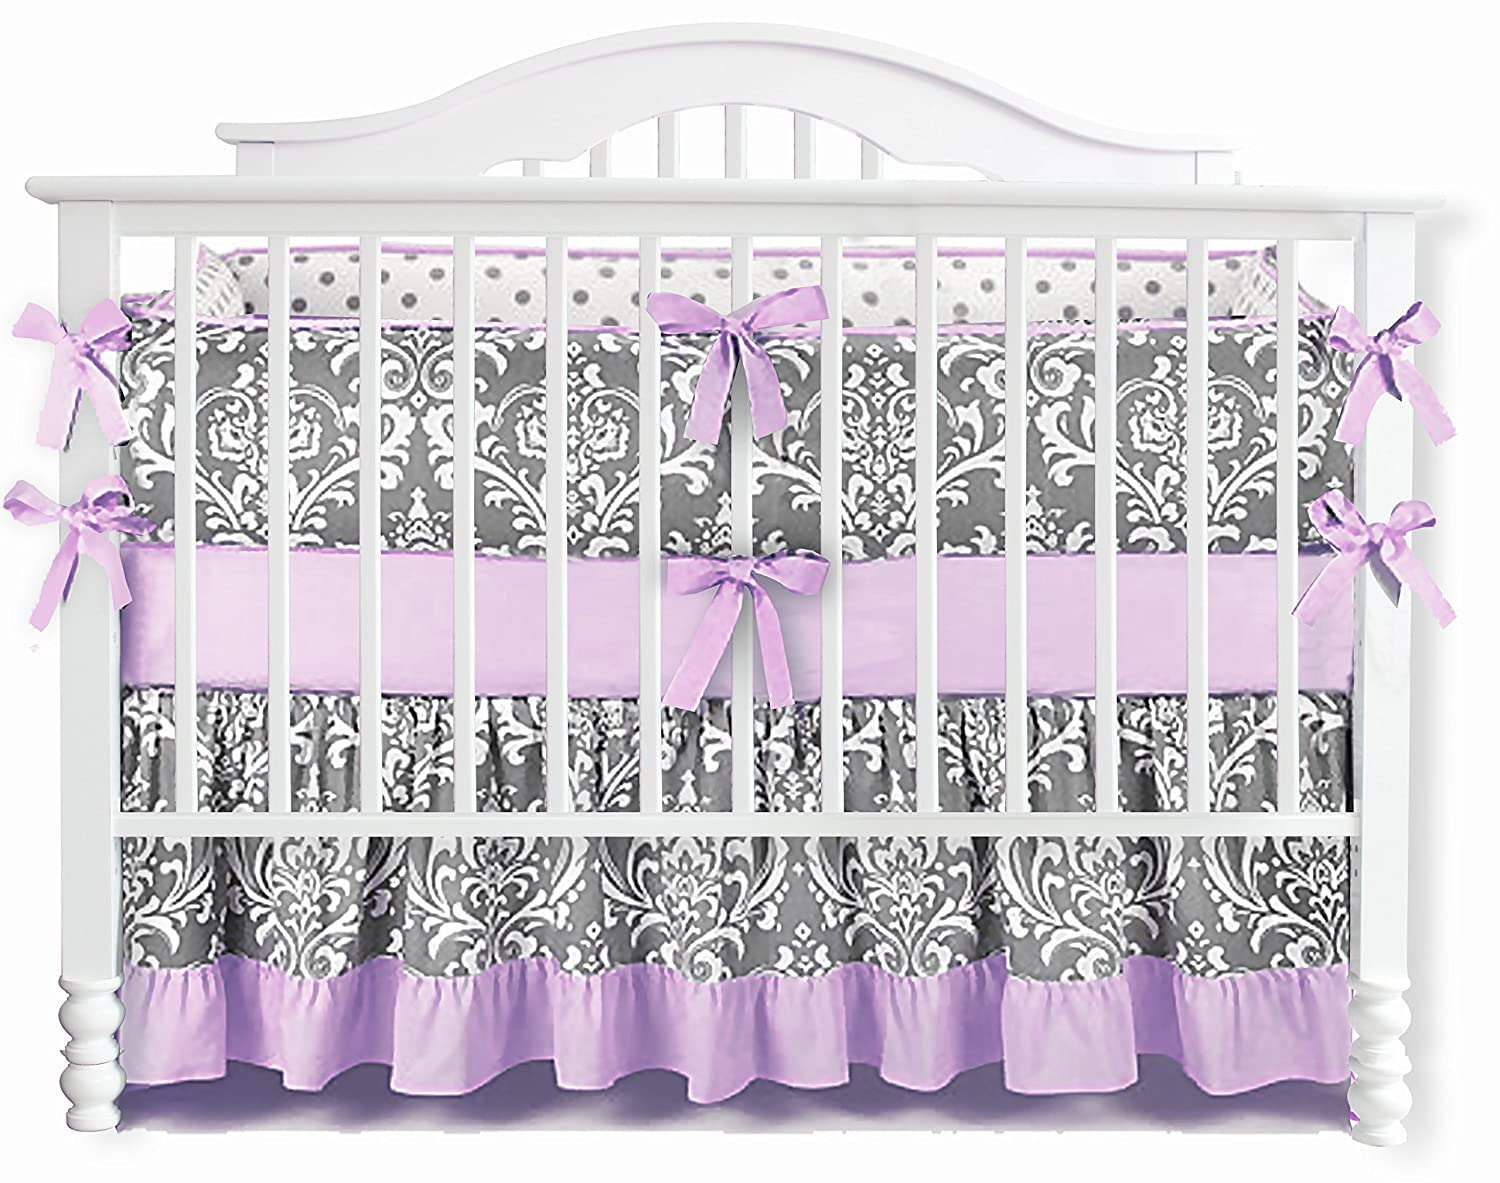 Sahaler Baby Crib Bedding Set for Girls Boys | 7 Pieces Set of Floral Nursery Bedding | Baby Blanket & Fitted Crib Sheets & Skirt & Bumper - White Floral on Grey/Ruffle Purple 91o6TfcnrIL